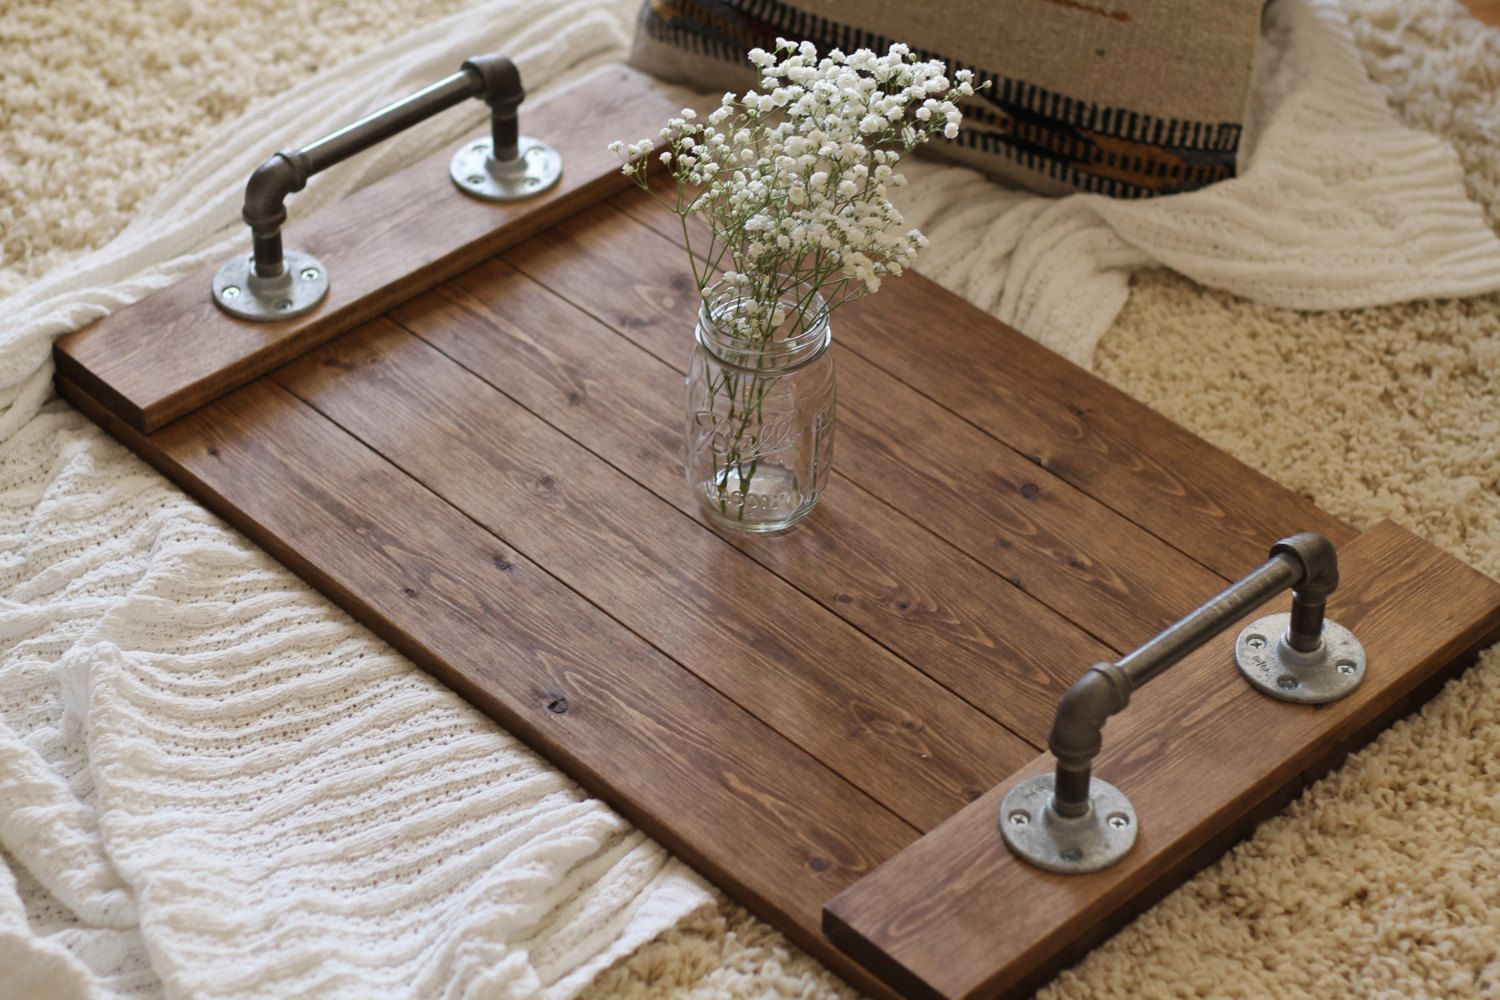 Ottoman Trays Home Decor Impressive Rustic Industrial Tray Wooden Tray Ottomandunnrusticdesigns Decorating Design